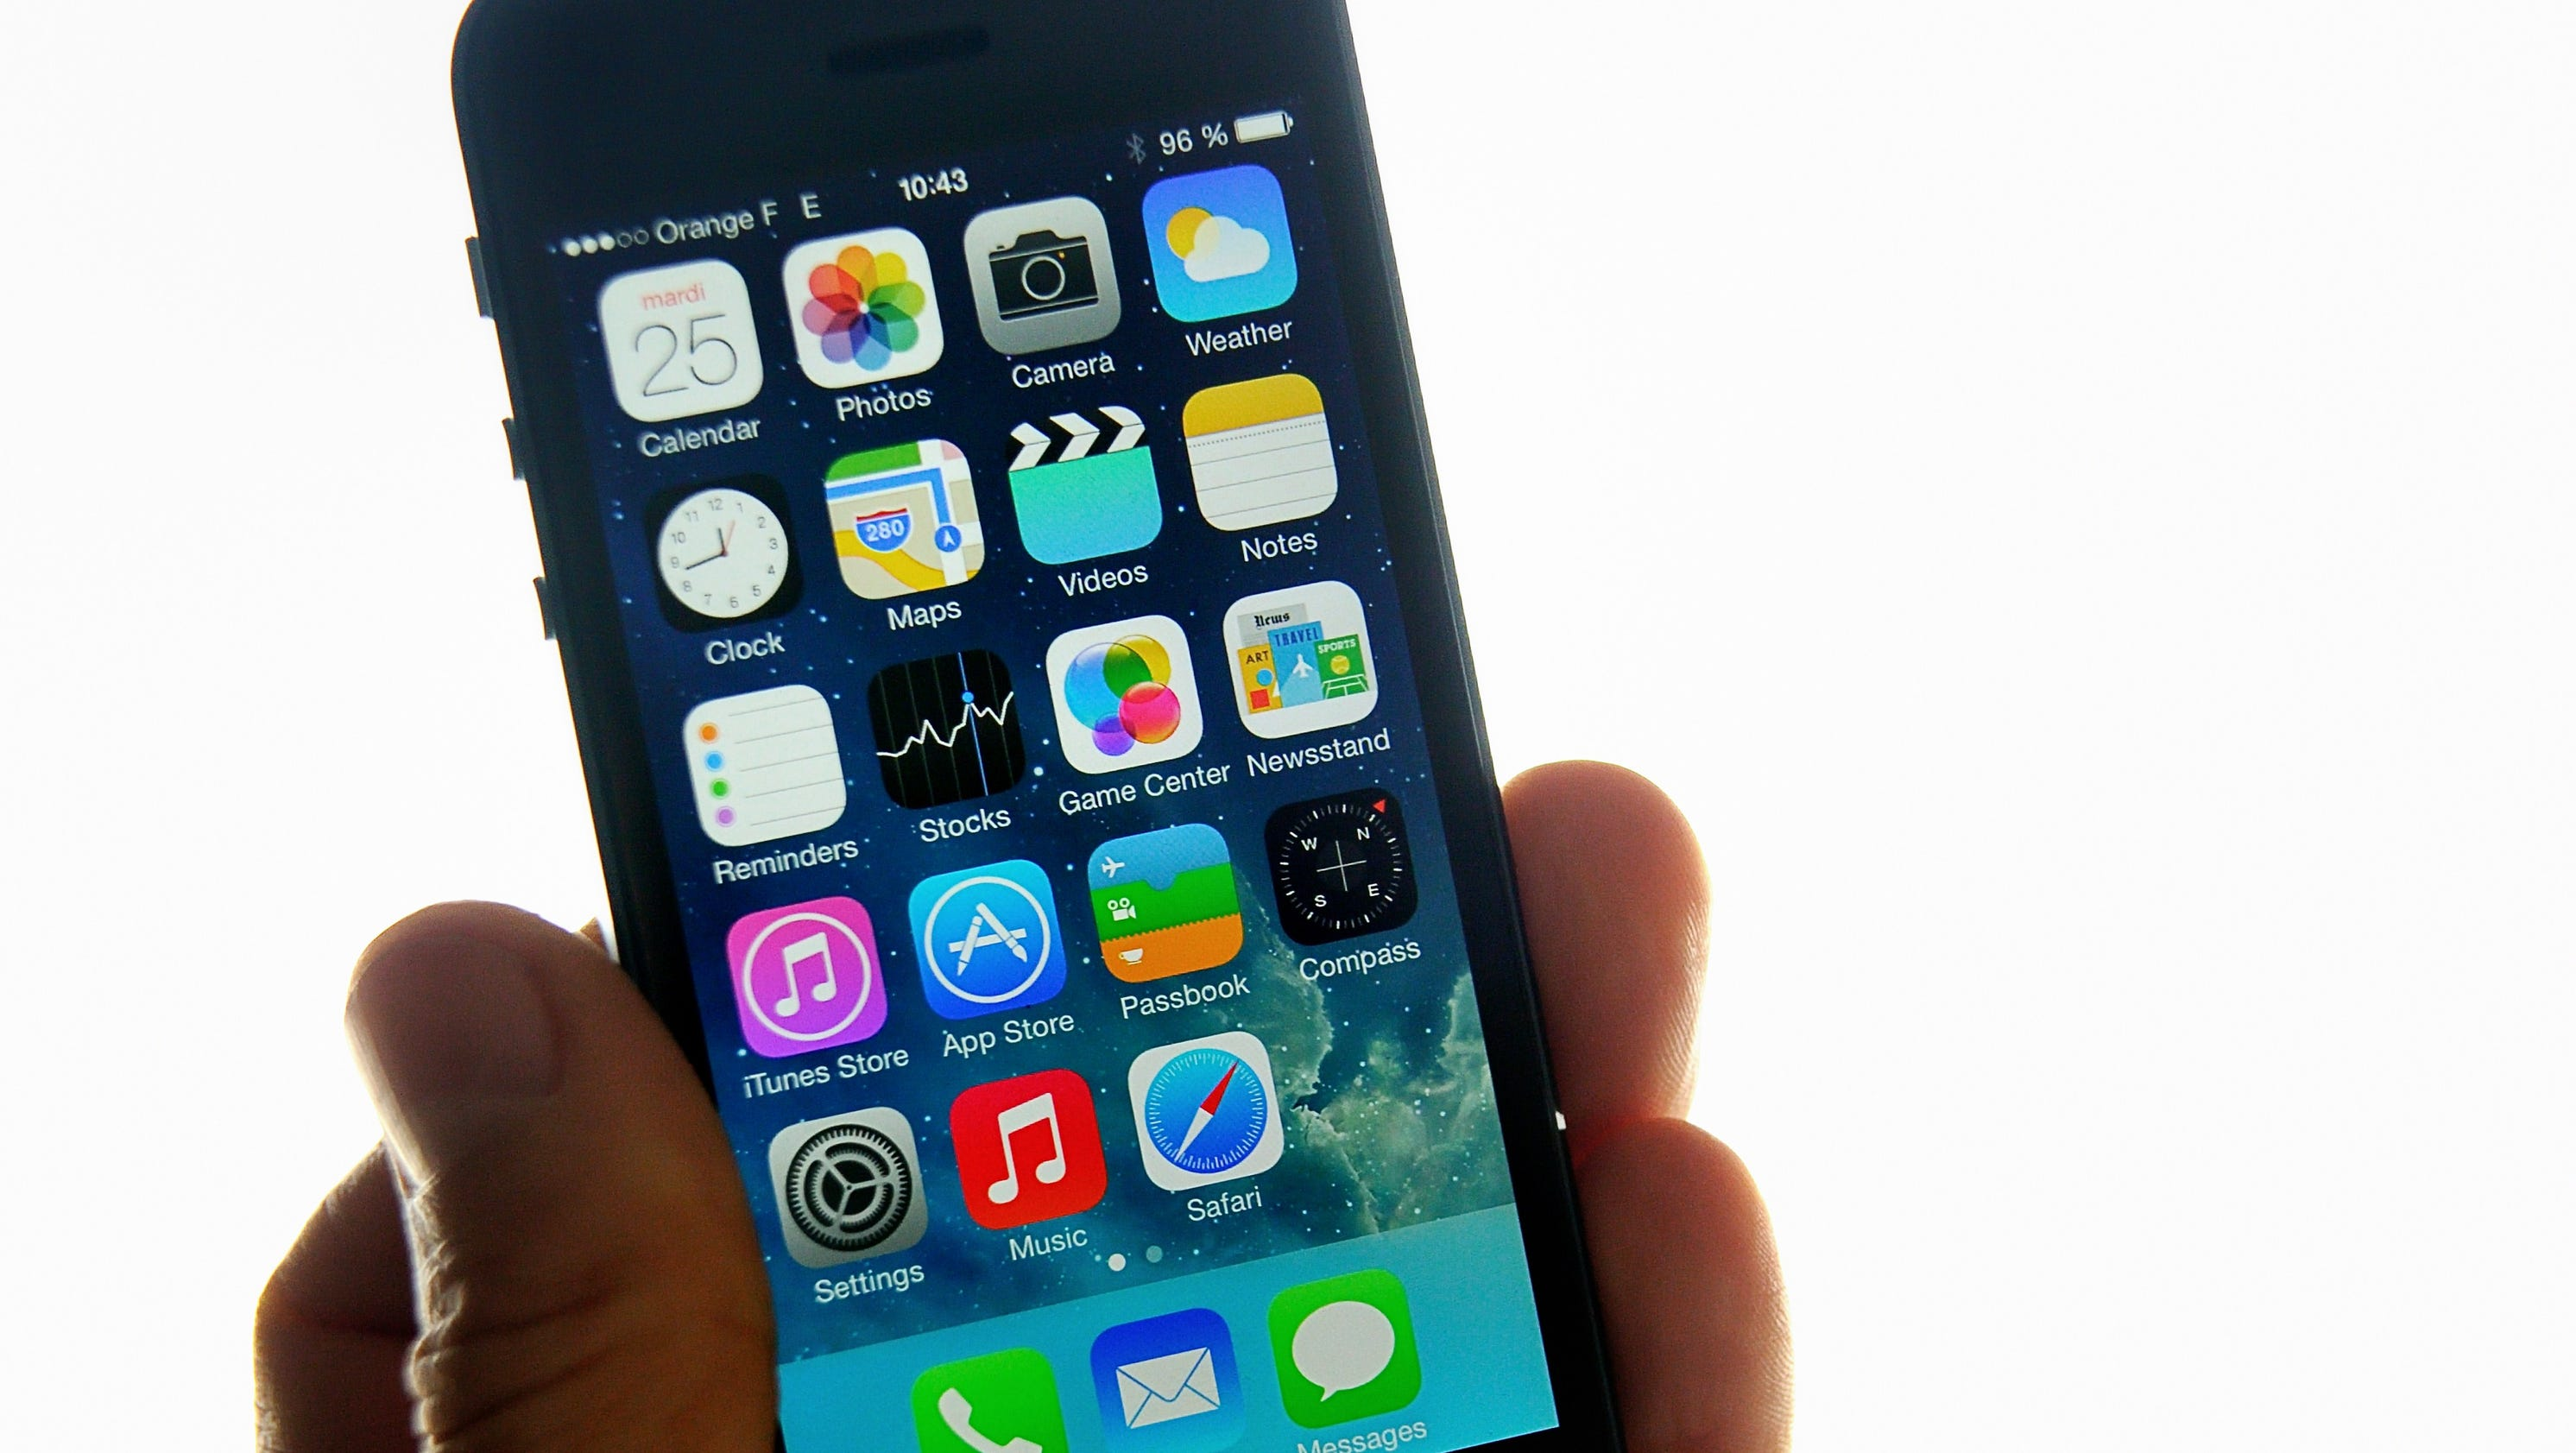 will apple s kill switch tamp down iphone thefts